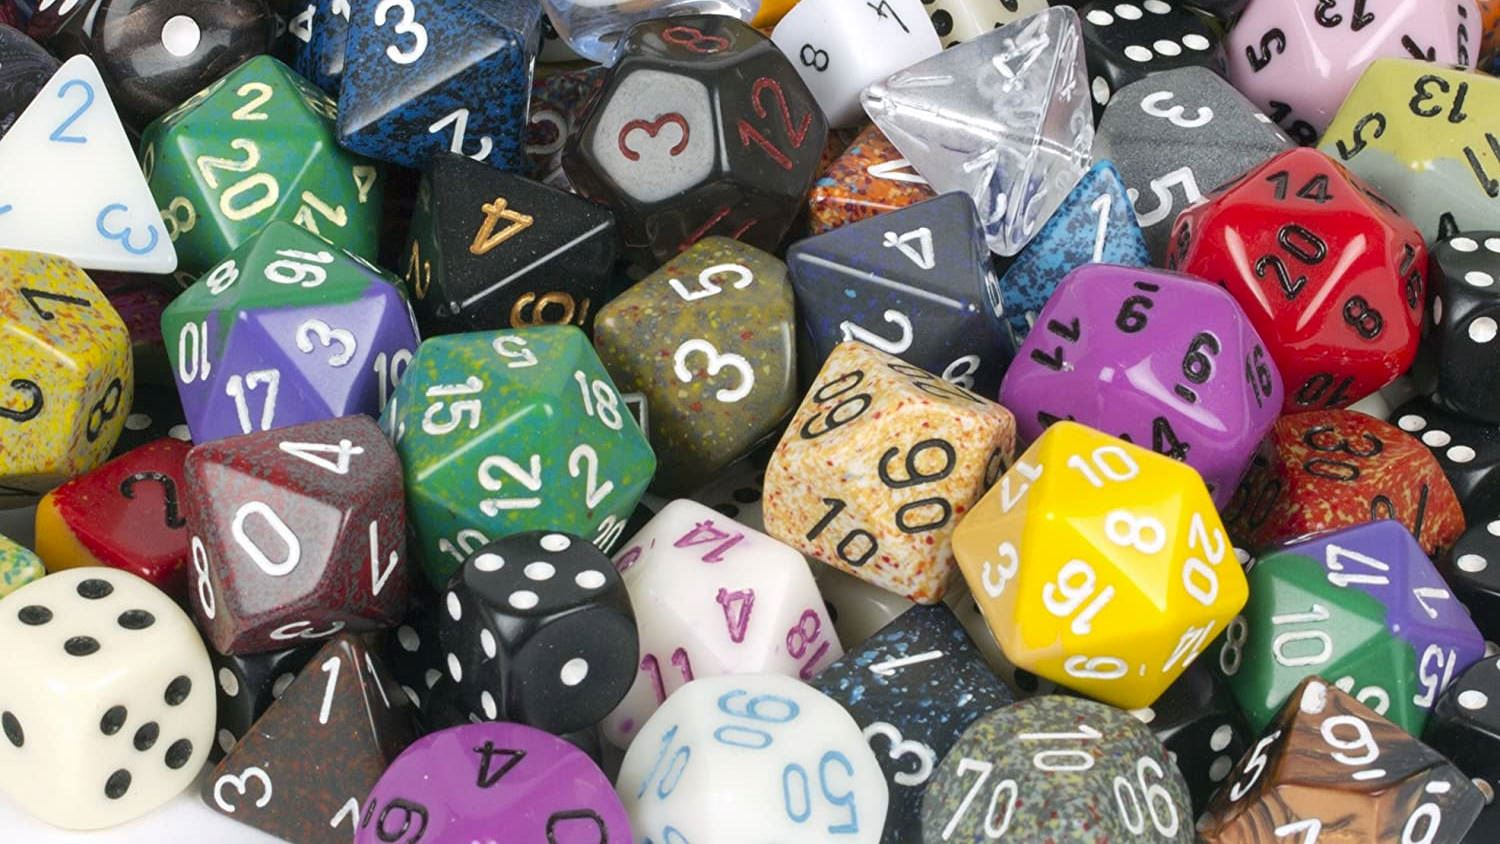 Teens & tweens can play Dungeons & Dragons from 12-4 p.m. on Saturday, Sept. 25 at Tabb Library.